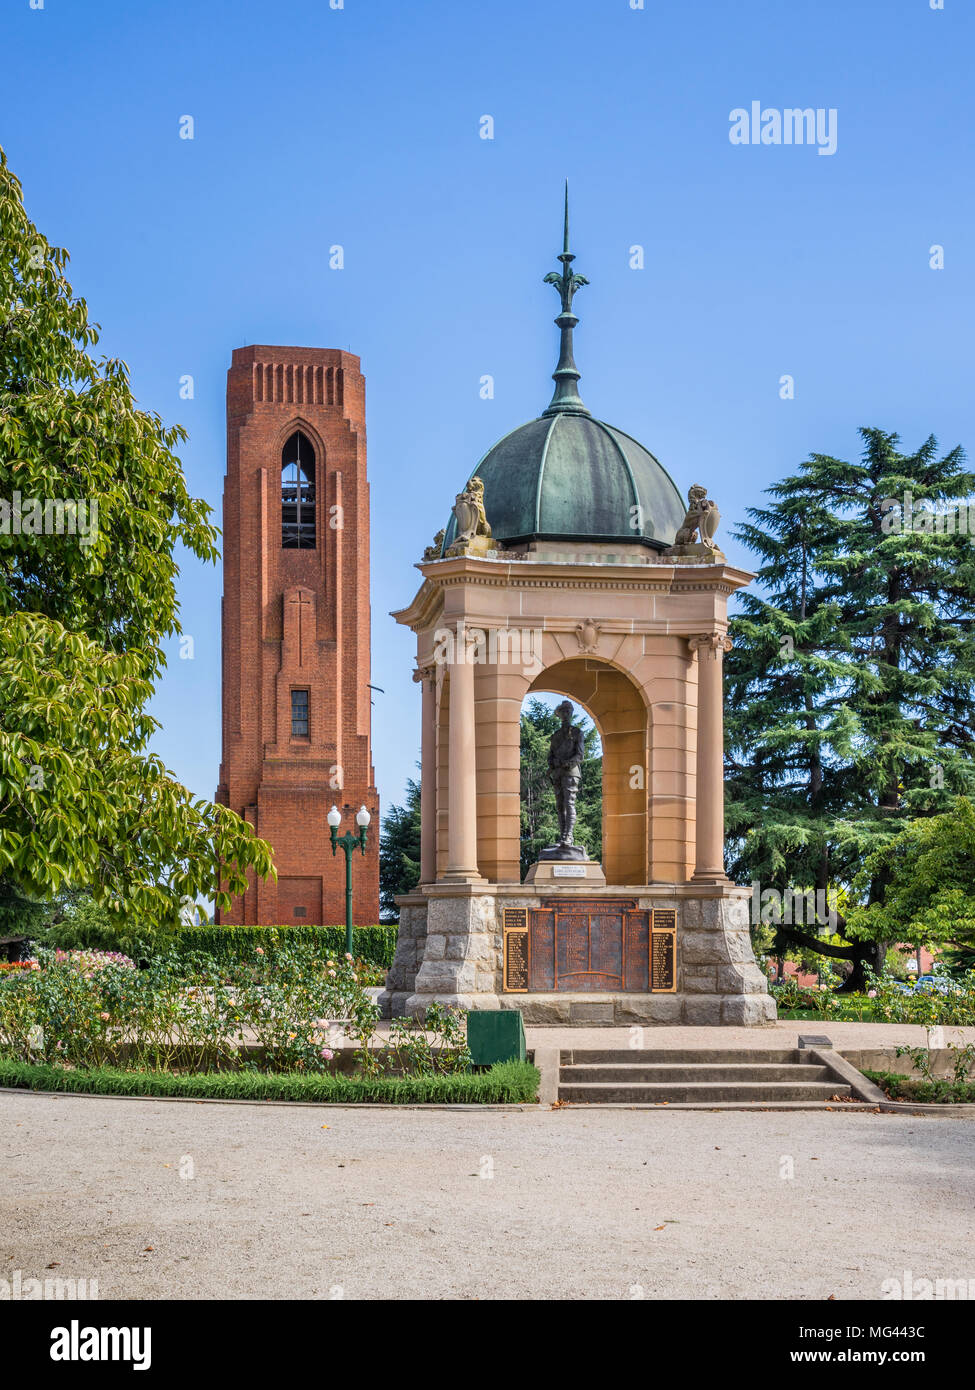 view of the Boer War Memorial and the 35-bell Carillon also dedicated as a war memorial on Kings Parade, Bathurst, Central Tablelands, New South Wales - Stock Image